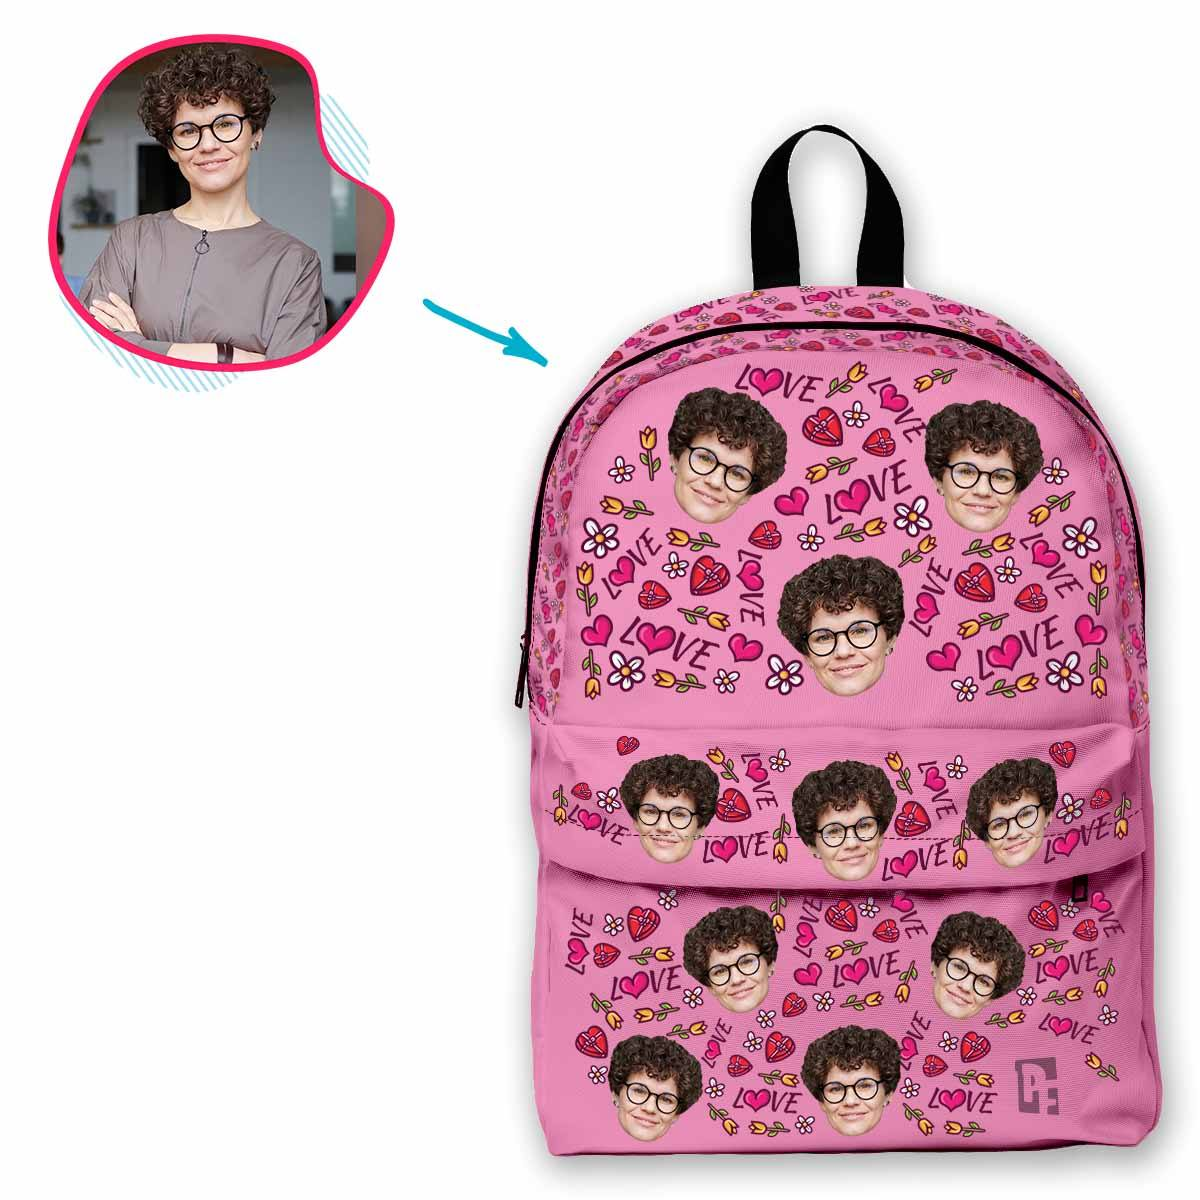 pink Hearts and Flowers classic backpack personalized with photo of face printed on it